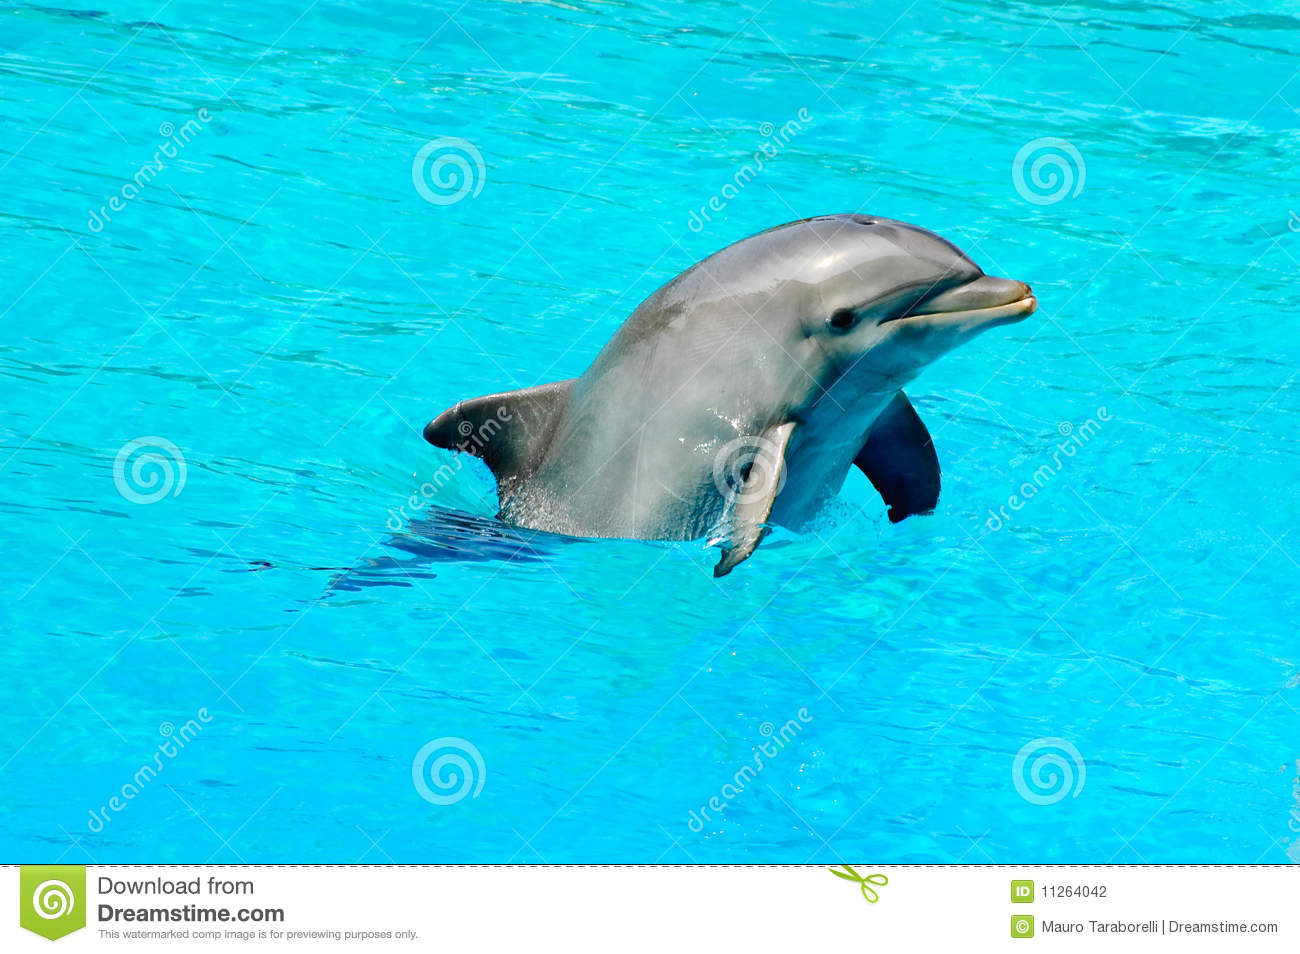 Dolphin swimming in a pool stock photography image 11264042 for Poole dolphin swimming pool prices